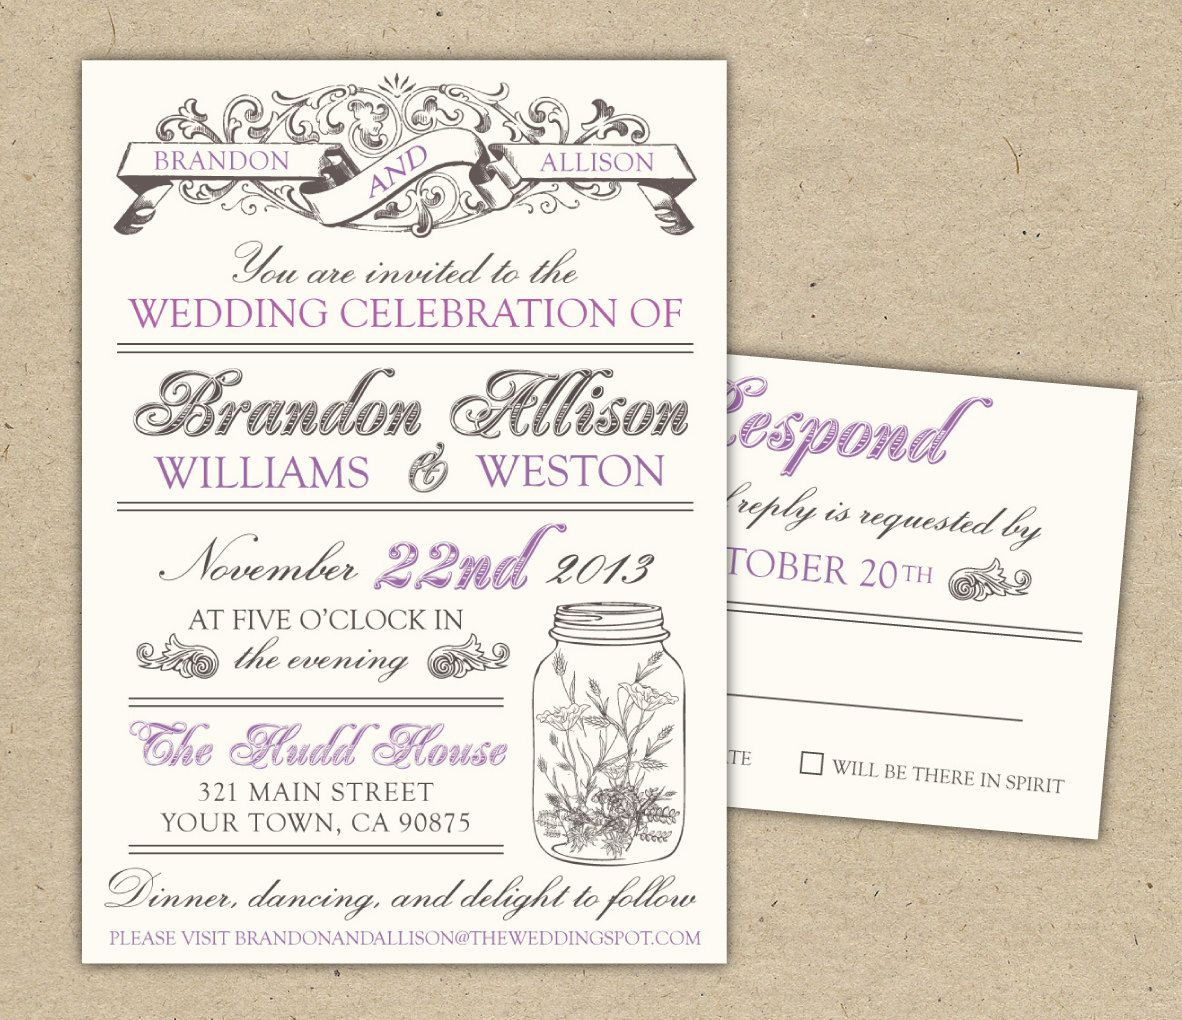 Free Templates For Invitations | Free Printable Vintage Wedding - Free Printable Wedding Invitations Templates Downloads